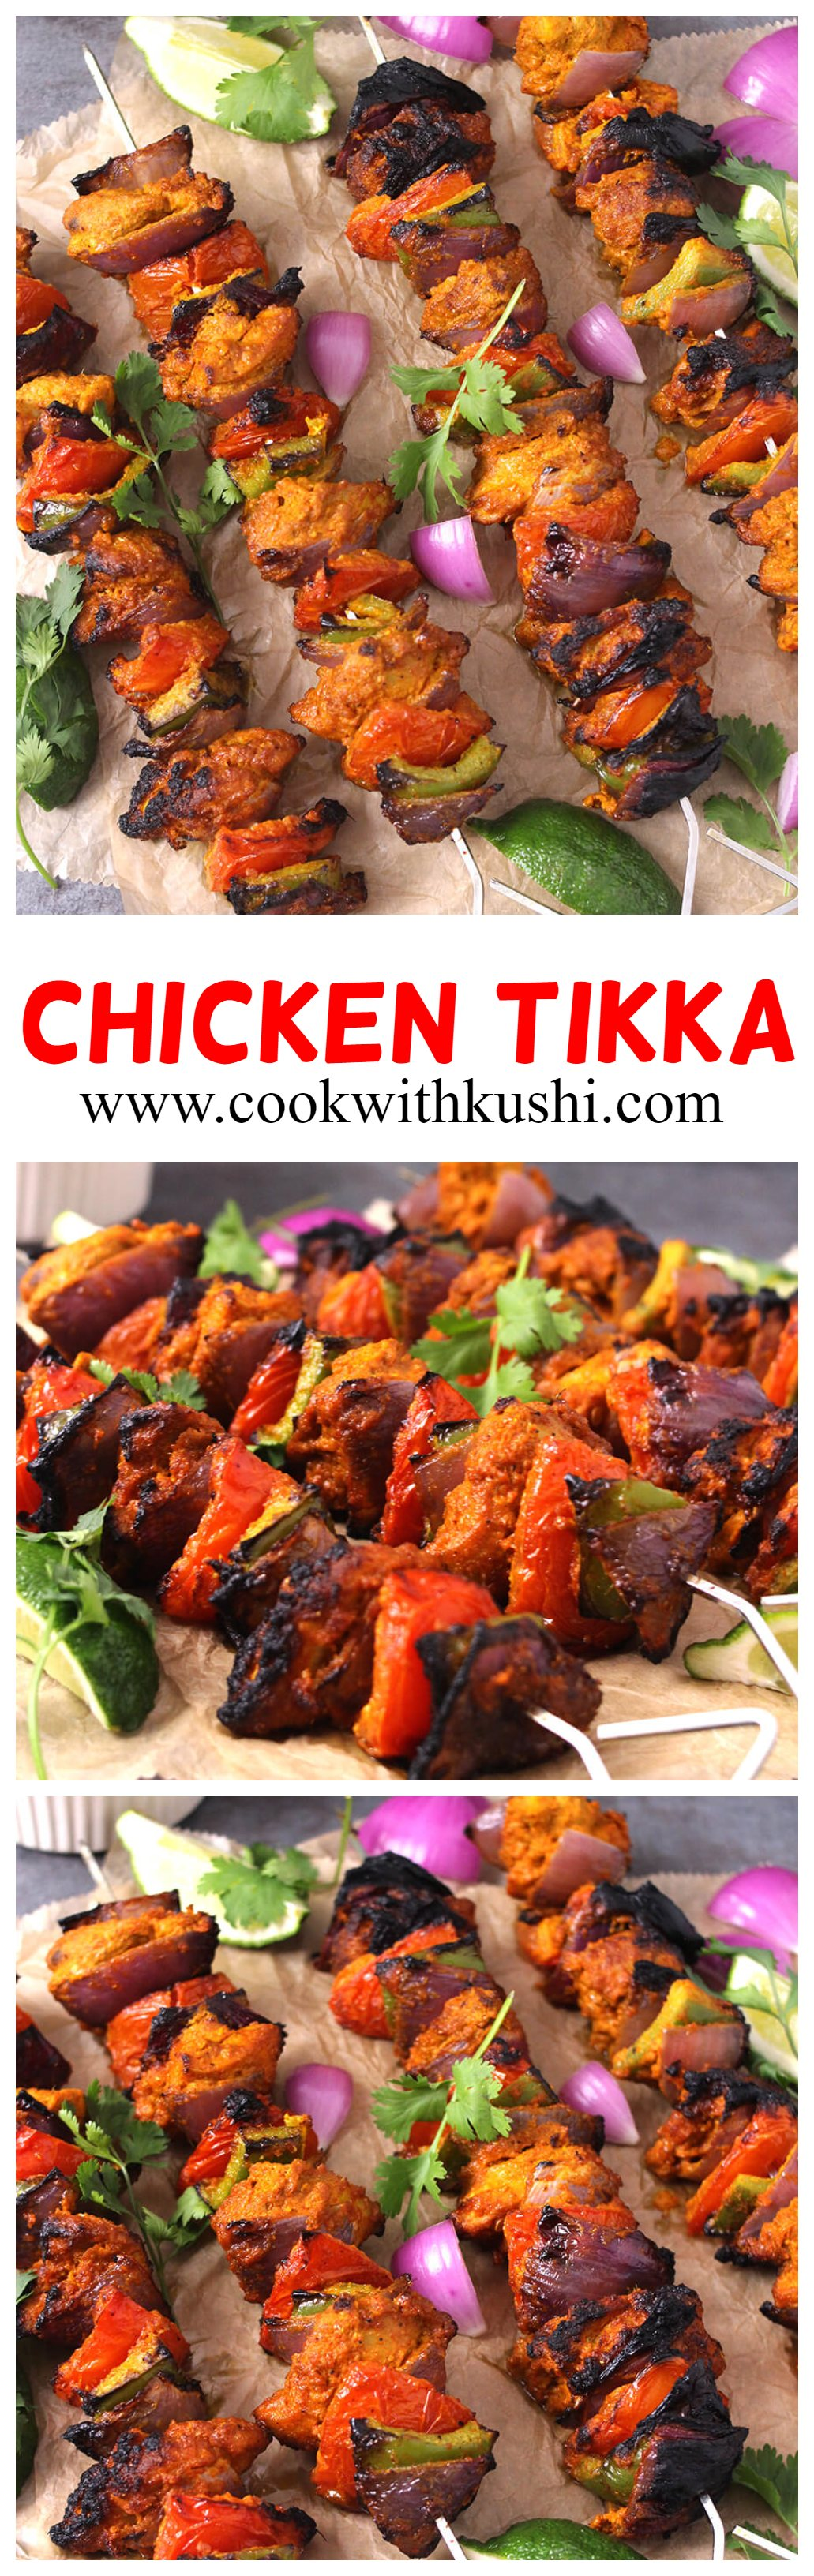 Chicken Tikka is a delicious and flavorful, easy to make Indian dish, where the chicken is first marinated in aromatic spice mixture and then grilled on skewers to perfection. I bet this will be one of the best chicken recipes you will try. #chickentikka #Restaurantstyle #chickentikkamasala #indianchickentikka #malaichicken #malaikebab #tandoorirecipes #paneertikka #popularindianrecipes #grilledchicken #easychciken #easydinnerrecipes